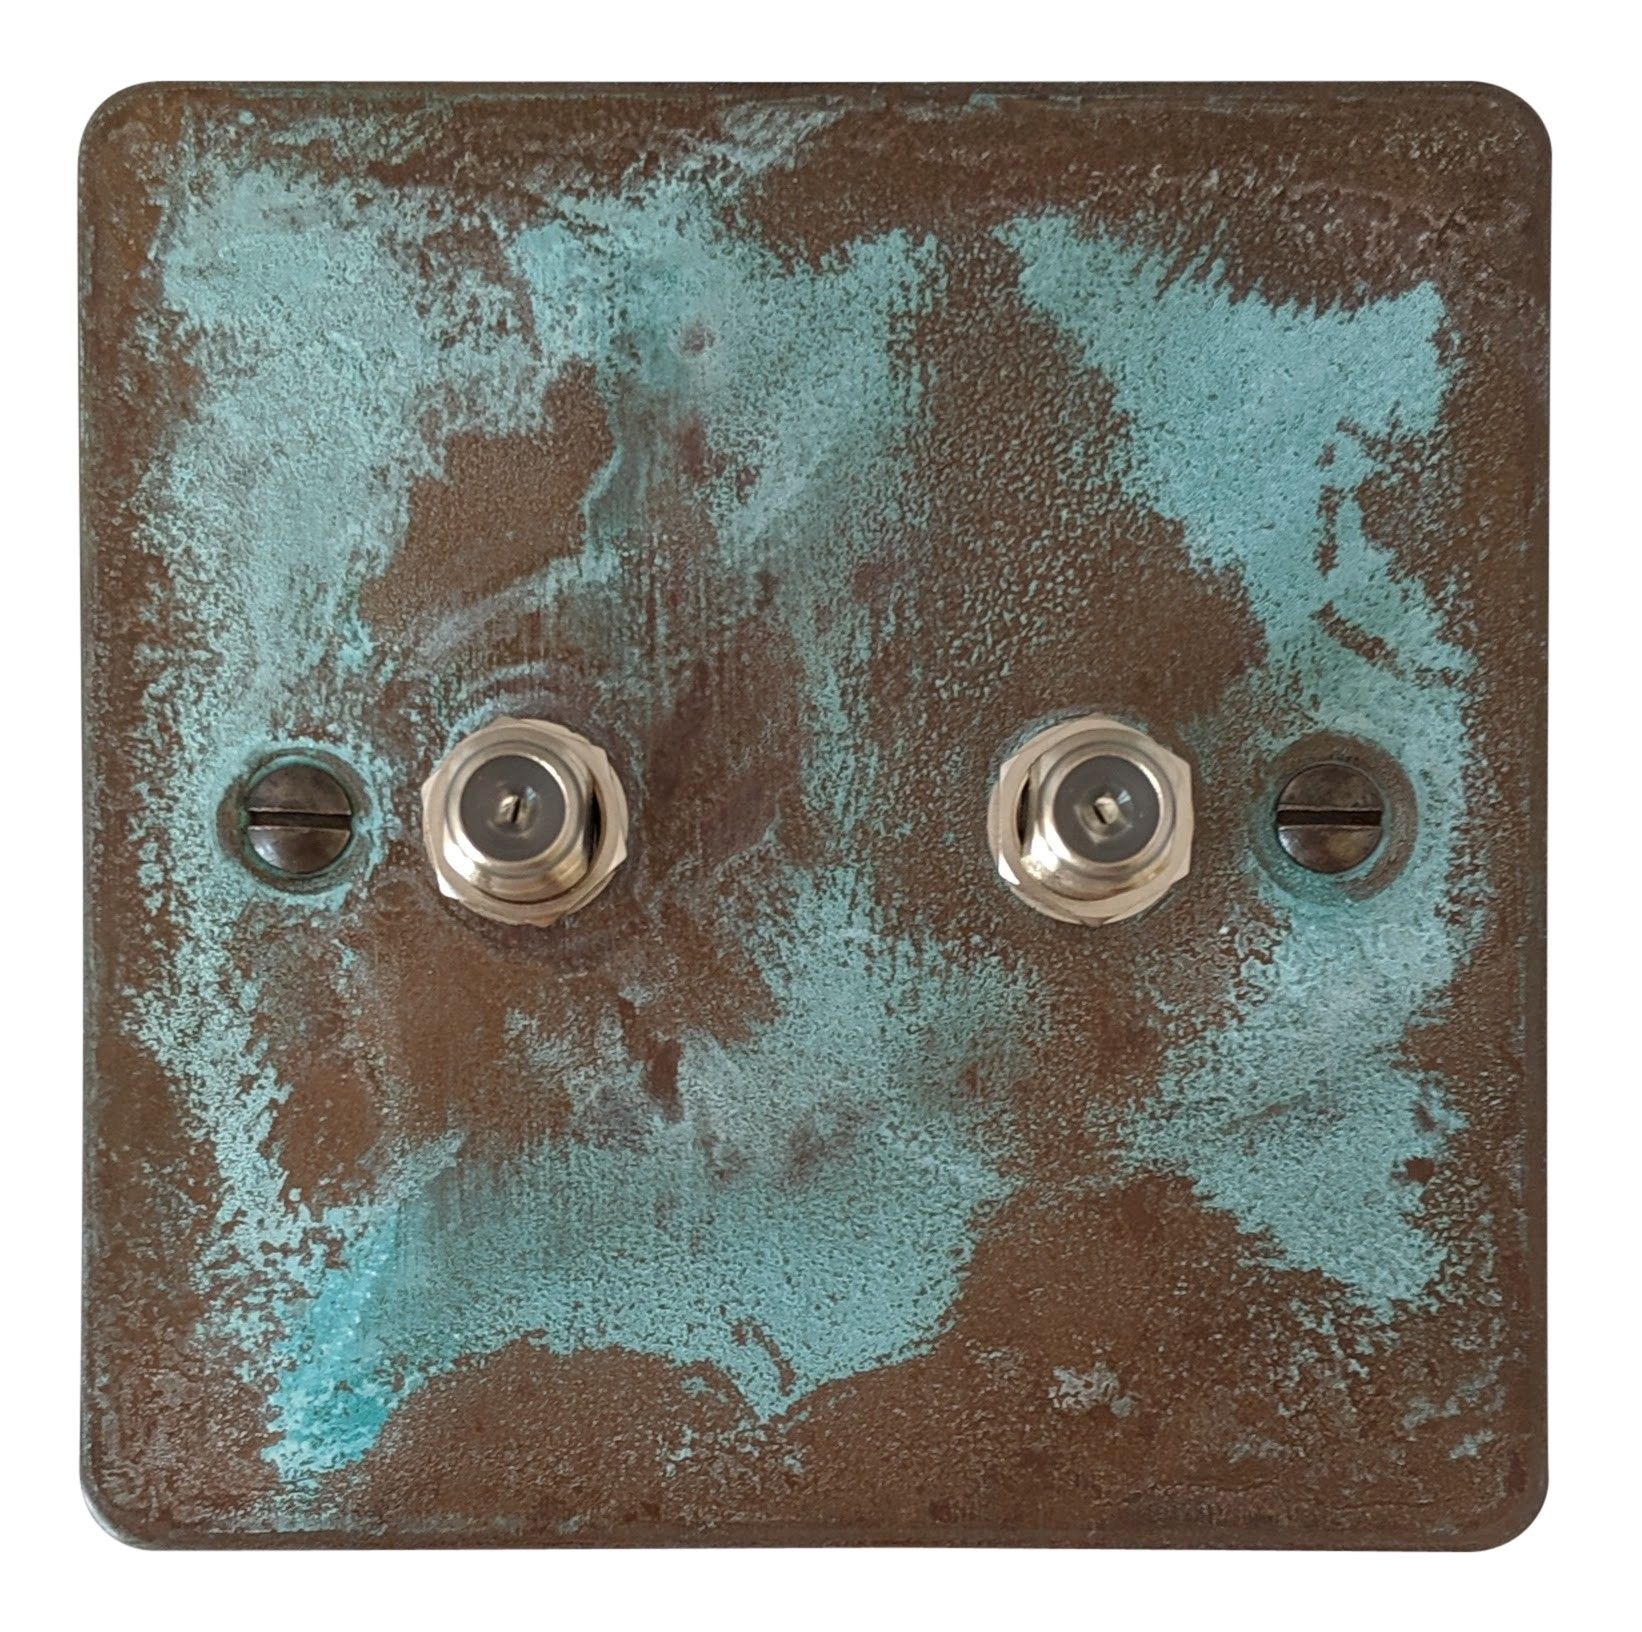 G&H FV237 Flat Plate Verdigris 2 Gang Satellite Socket Point